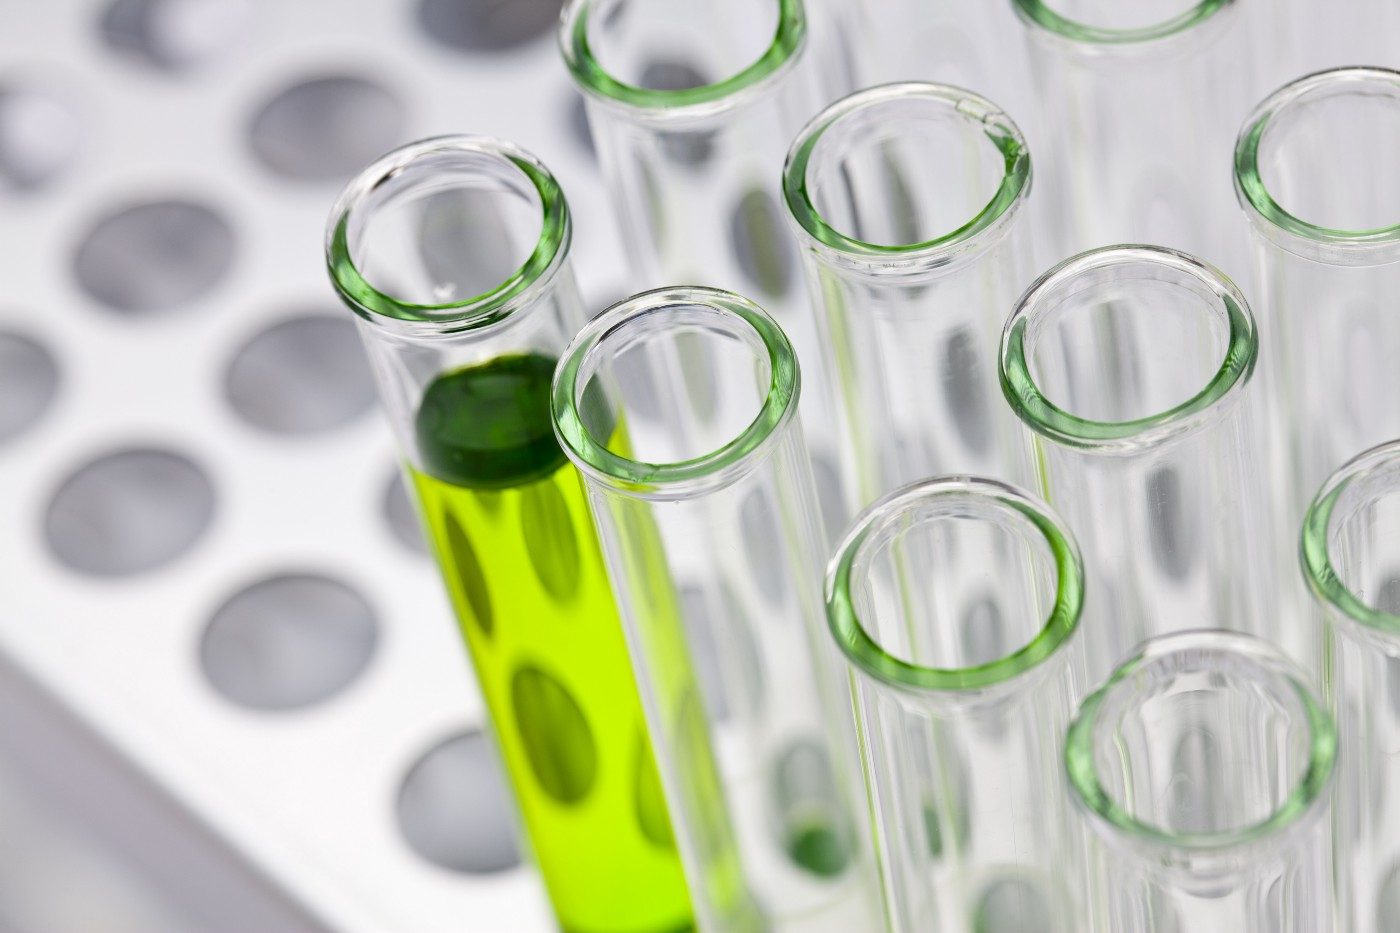 a rack of test tubes, one of which is filled with a green liquid